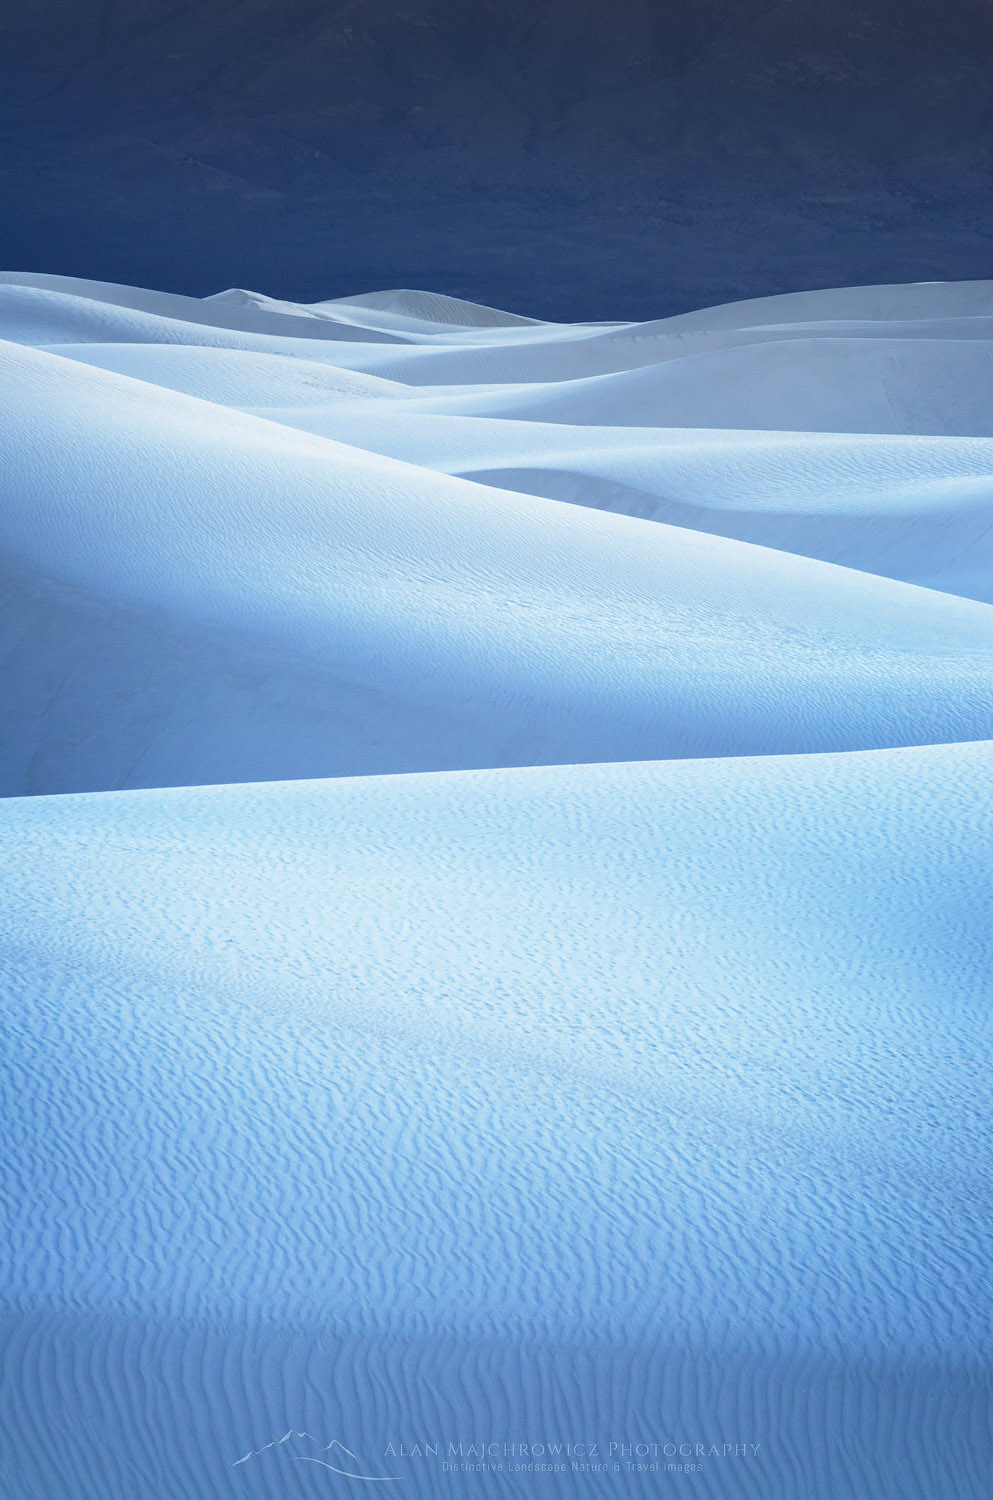 White Sands National Monument, New Mexico Photo Highlights 2016